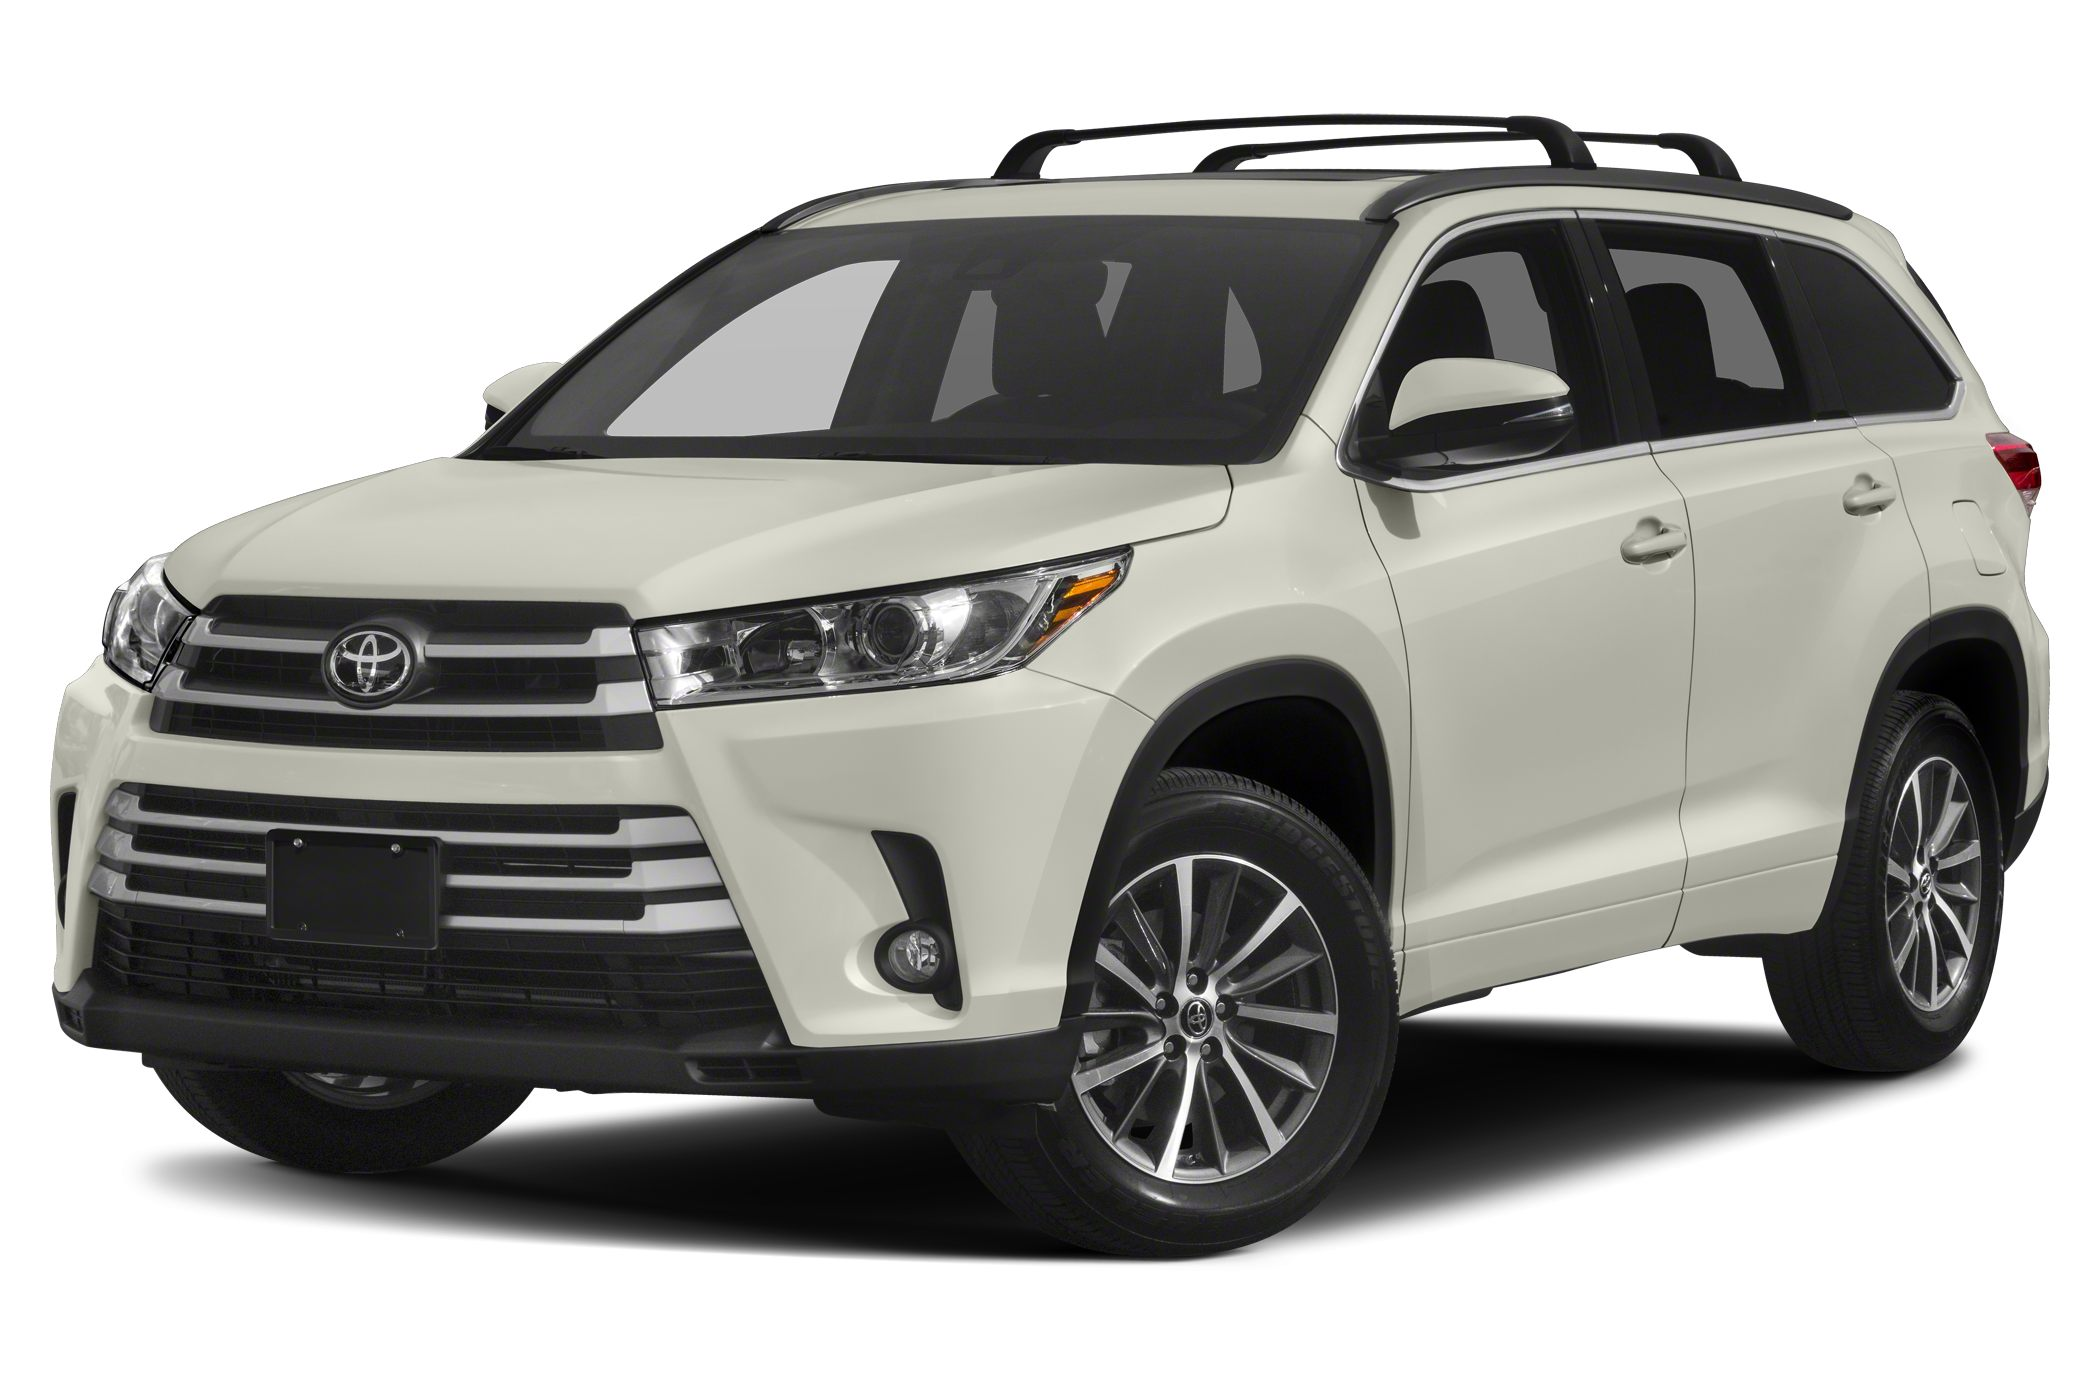 2018 Toyota Highlander XLE V6 4dr All-wheel Drive